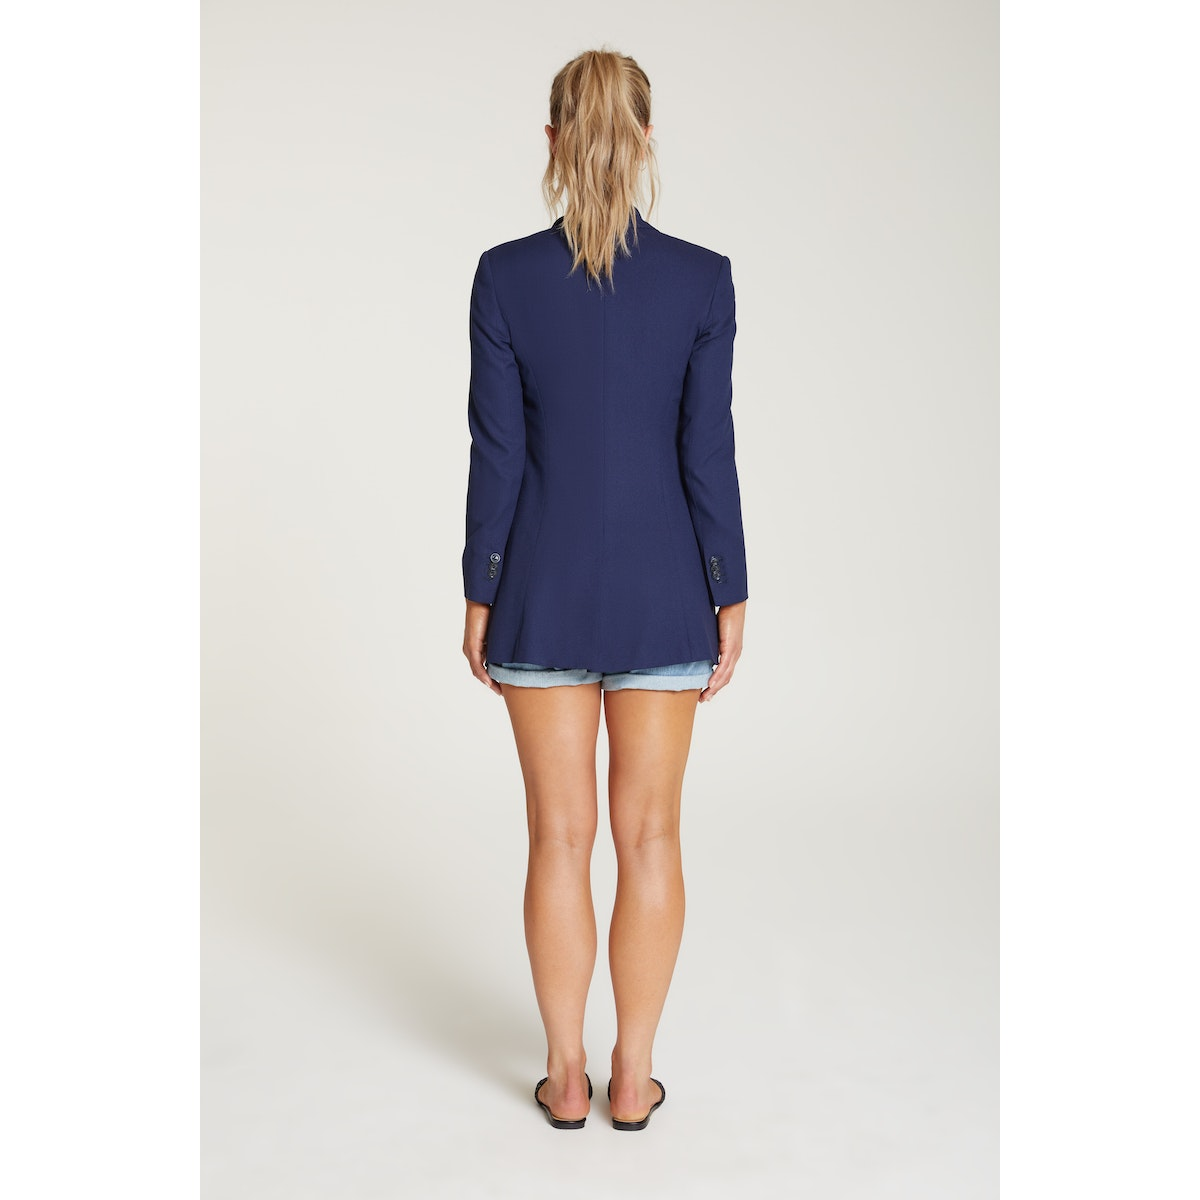 InStitchu Collection The Atkins Navy Crepe Jacket